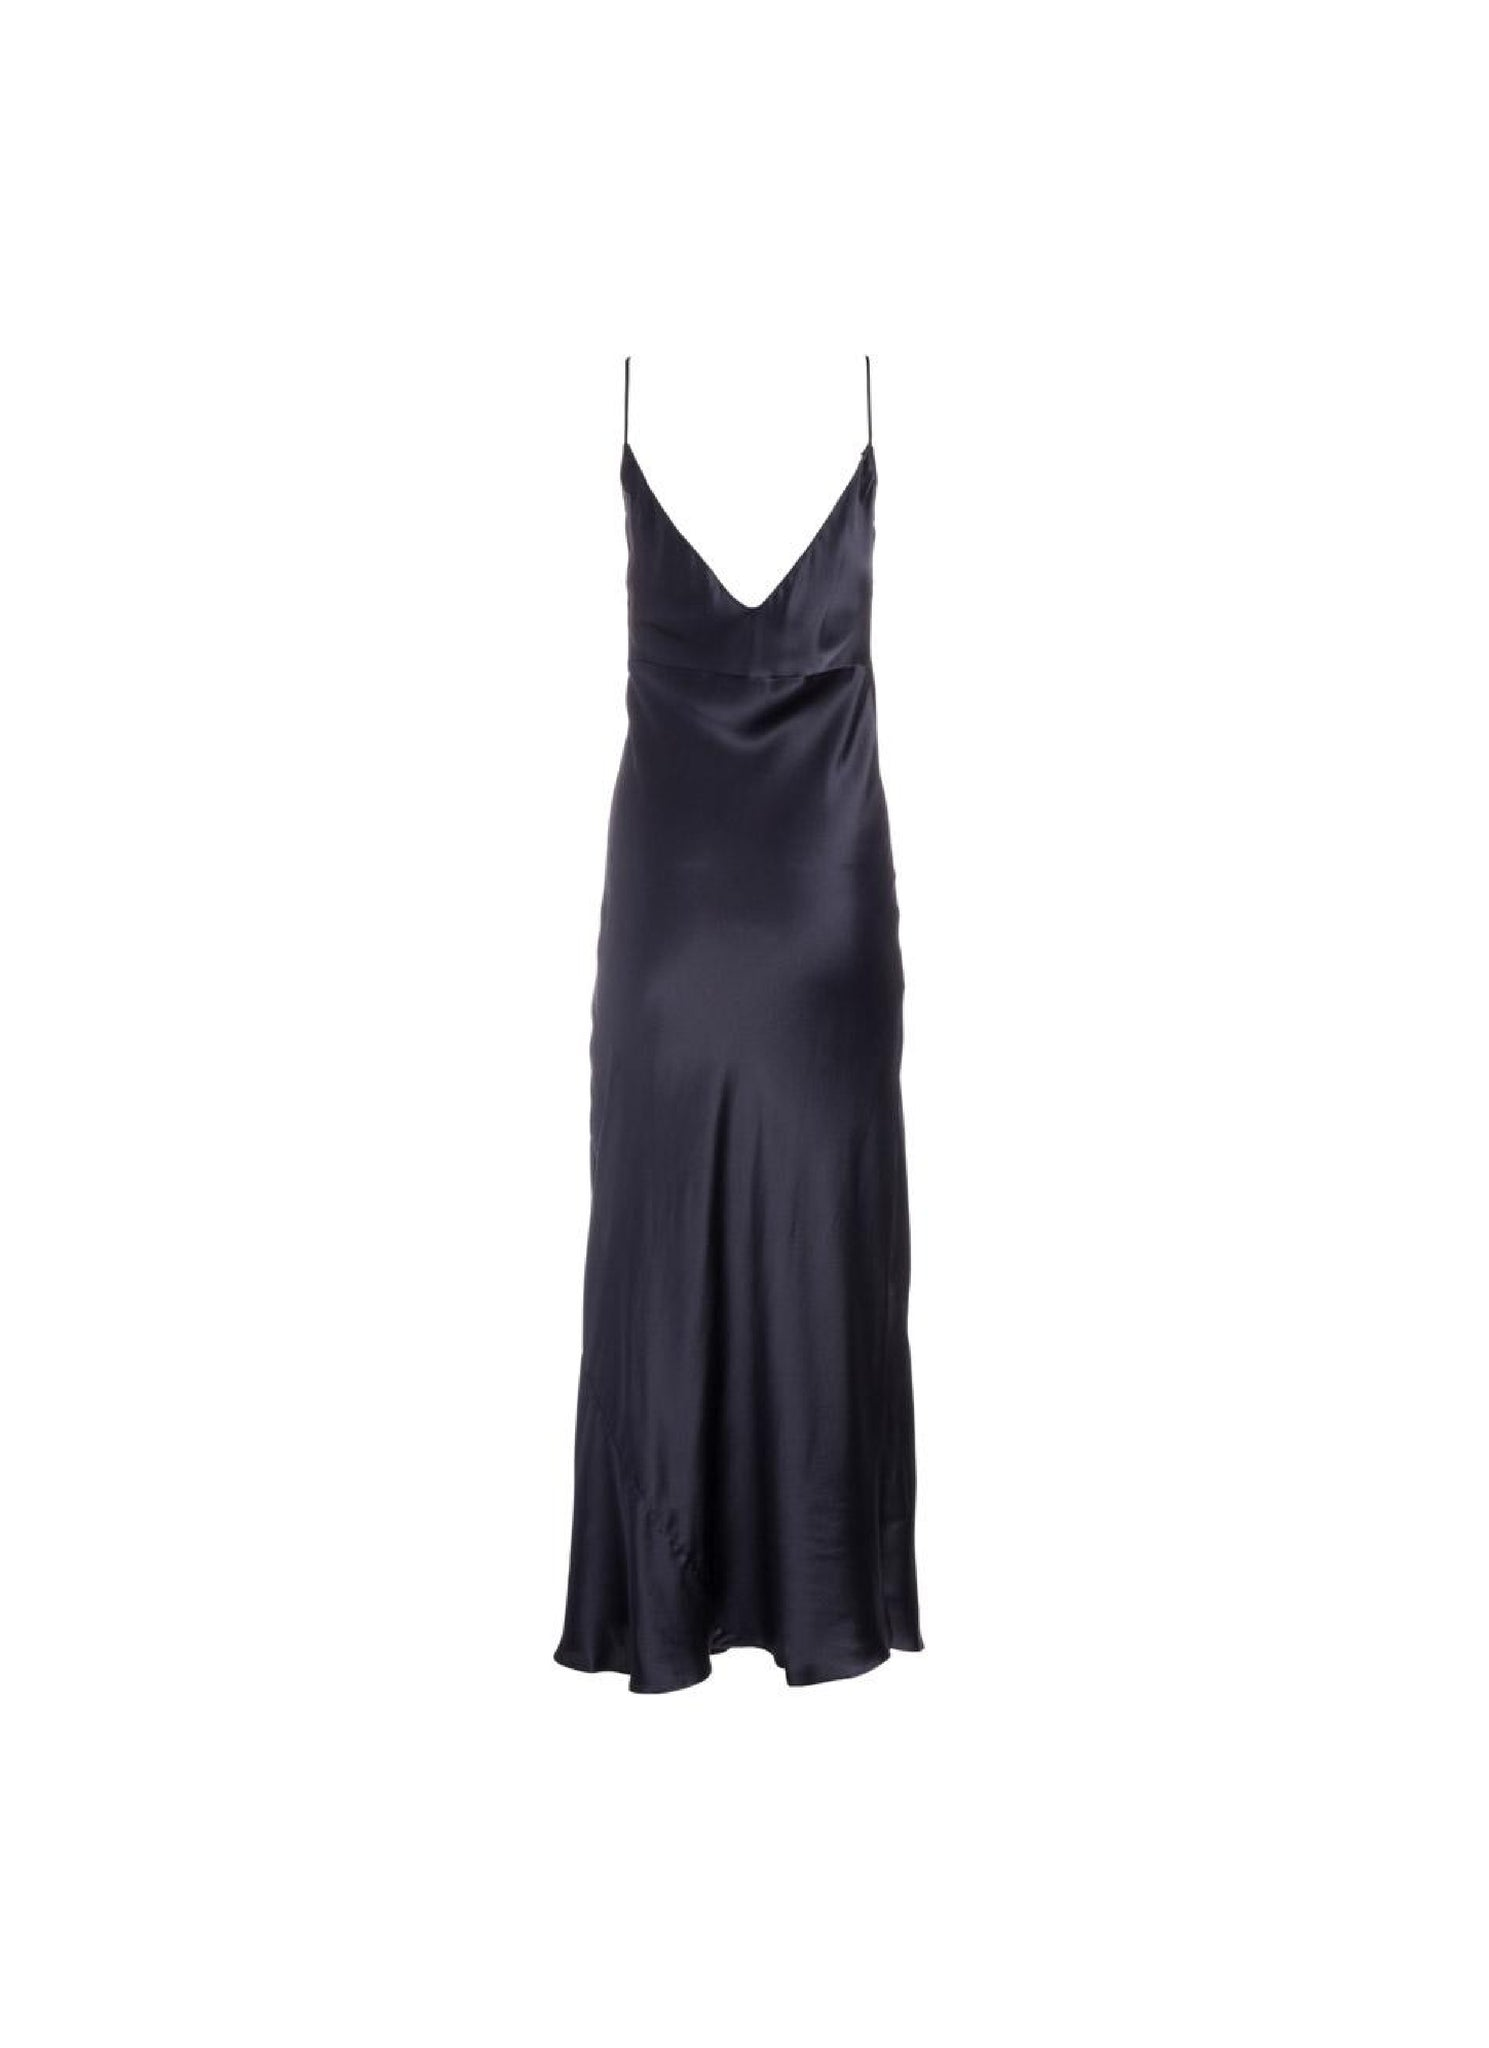 Mossy Slip Dress Almost Black